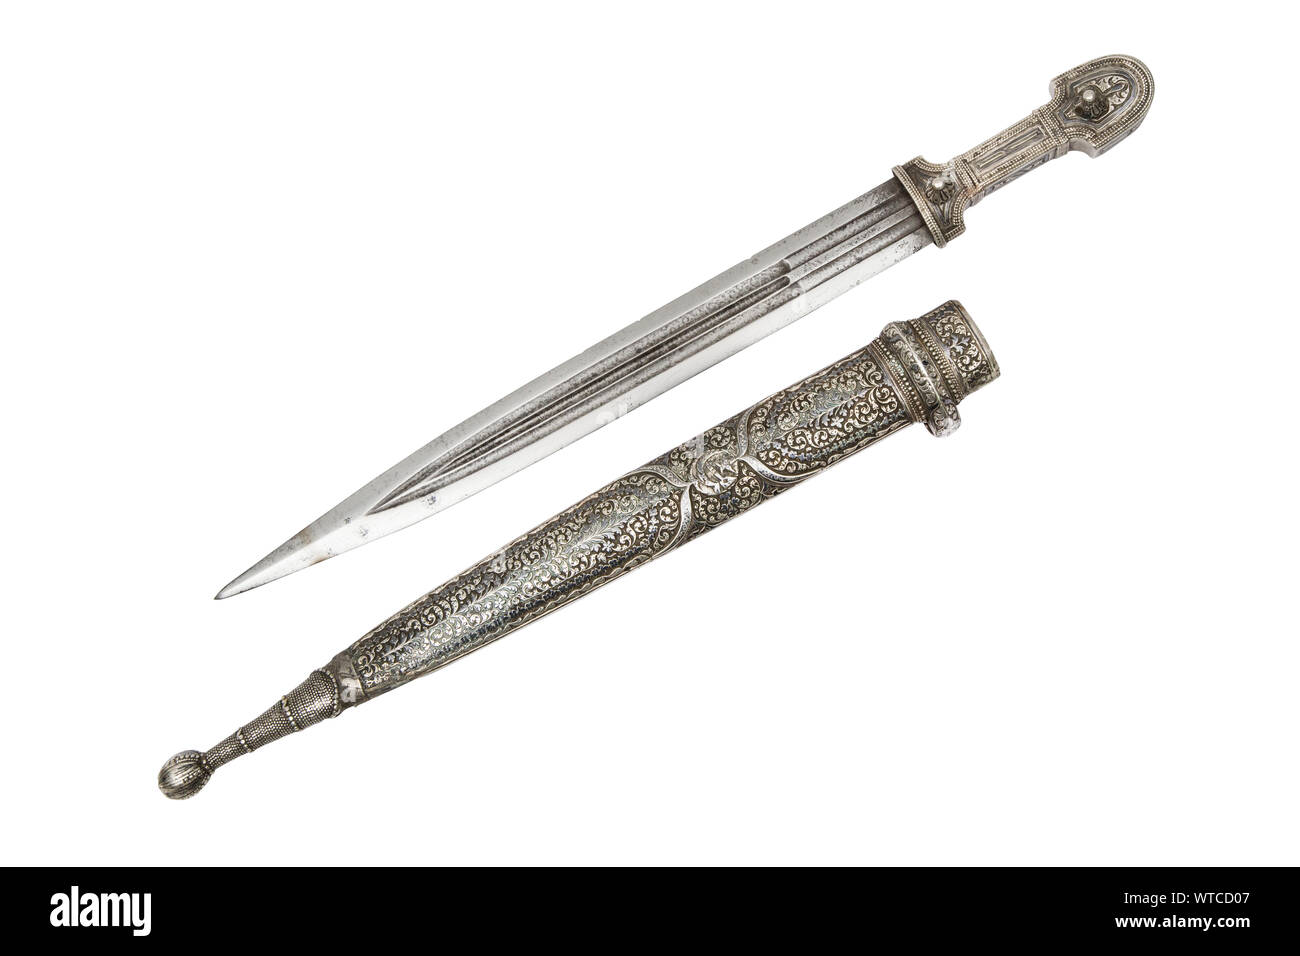 Dagestan dagger (kama) with solid heavy silver mounts decorated with deep floral motif engraving and niello. The blade is decorated with silver inlay Stock Photo